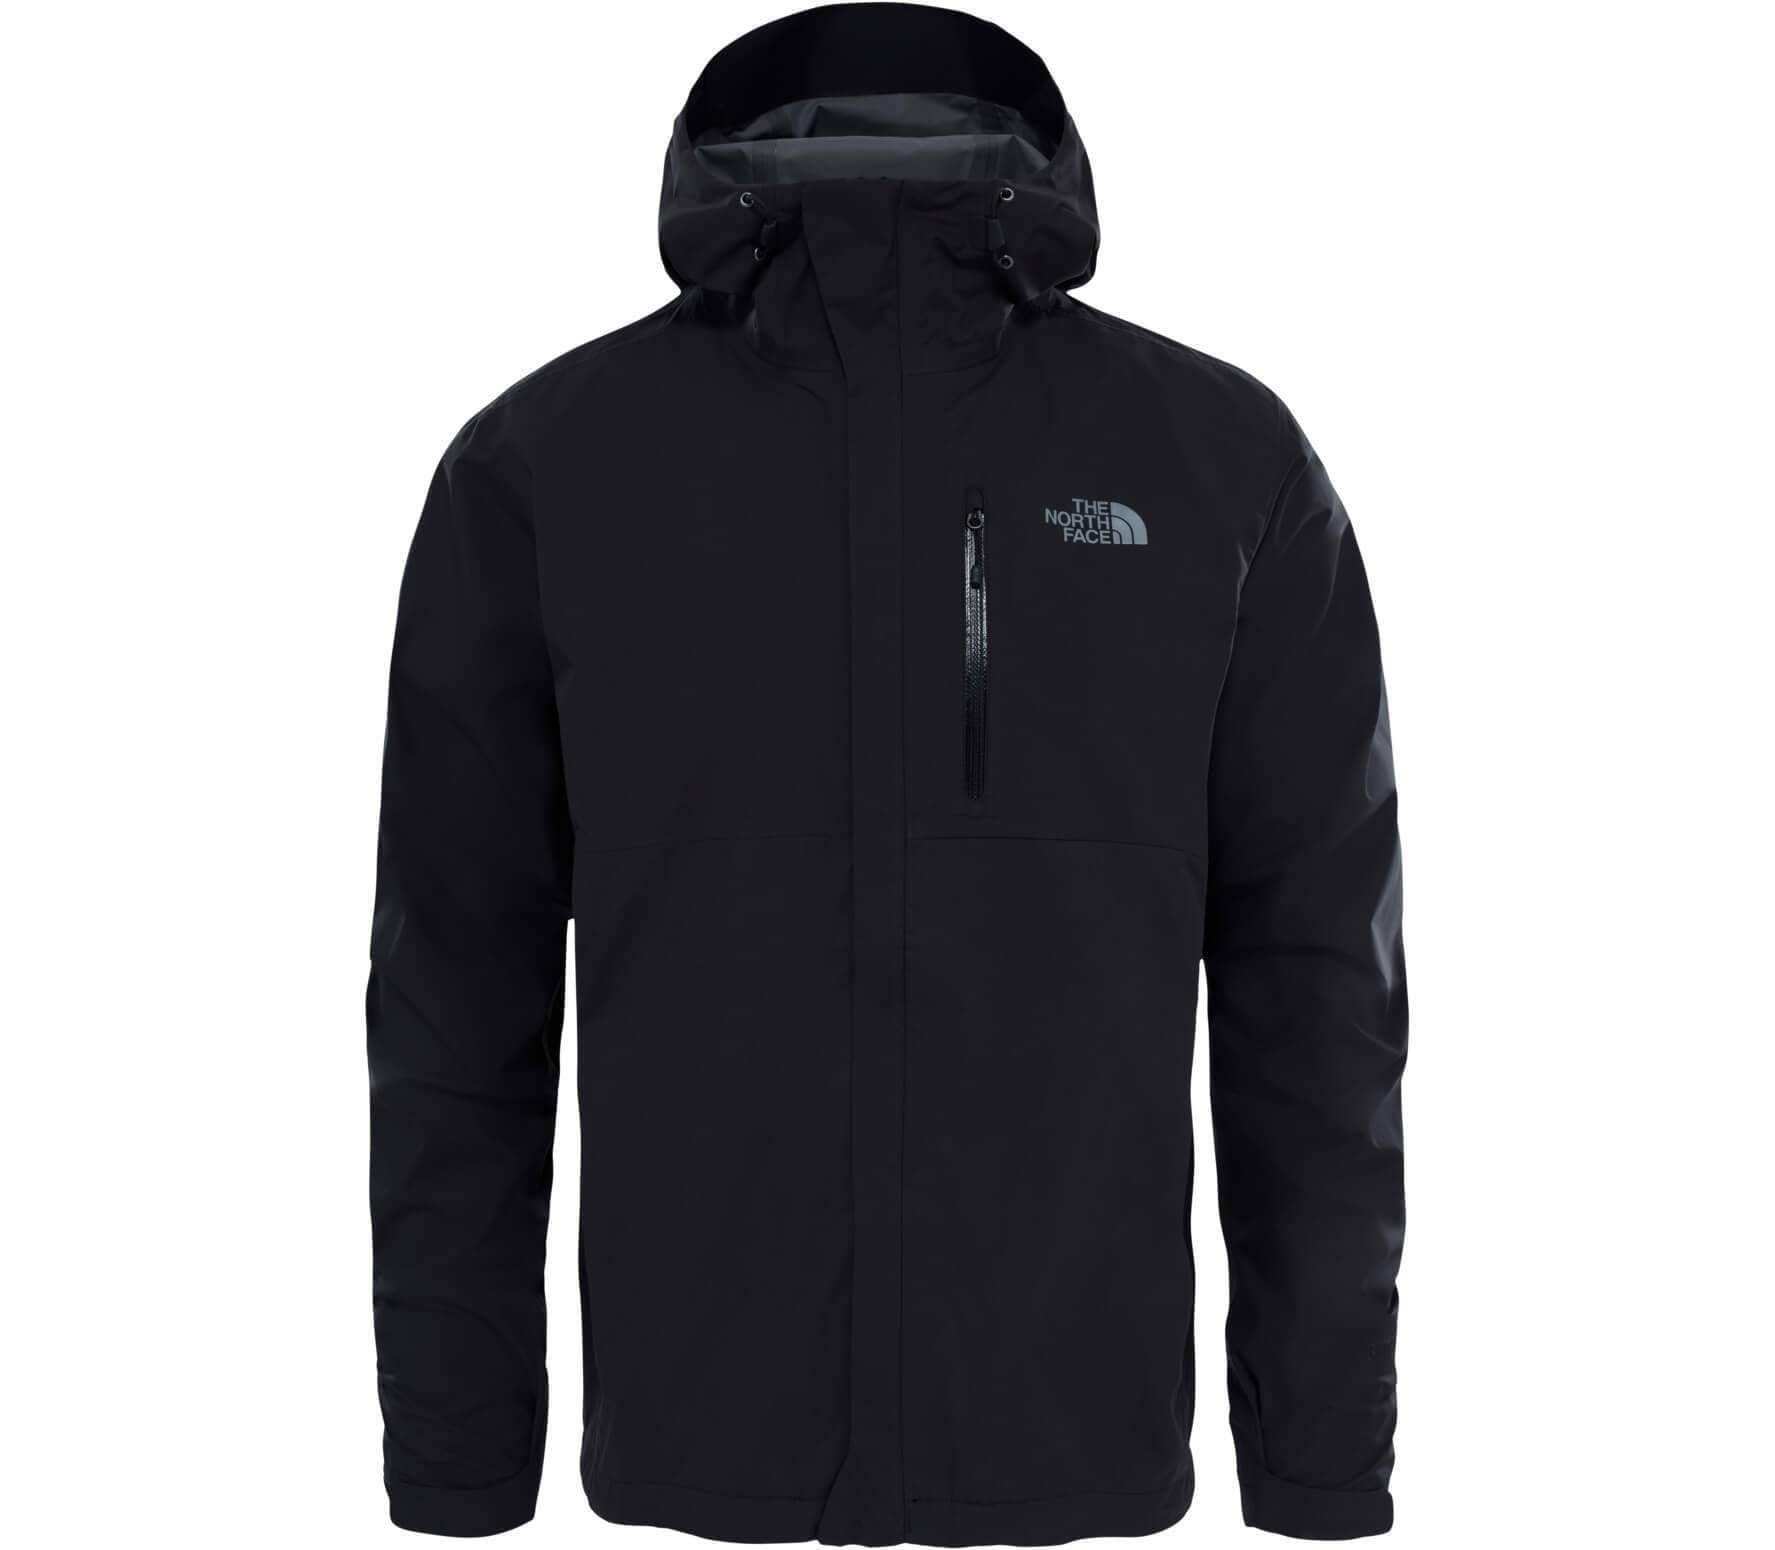 ff08bb8a8b6 The North Face Dryzzle Mænd sort Køb online hos Keller Sports